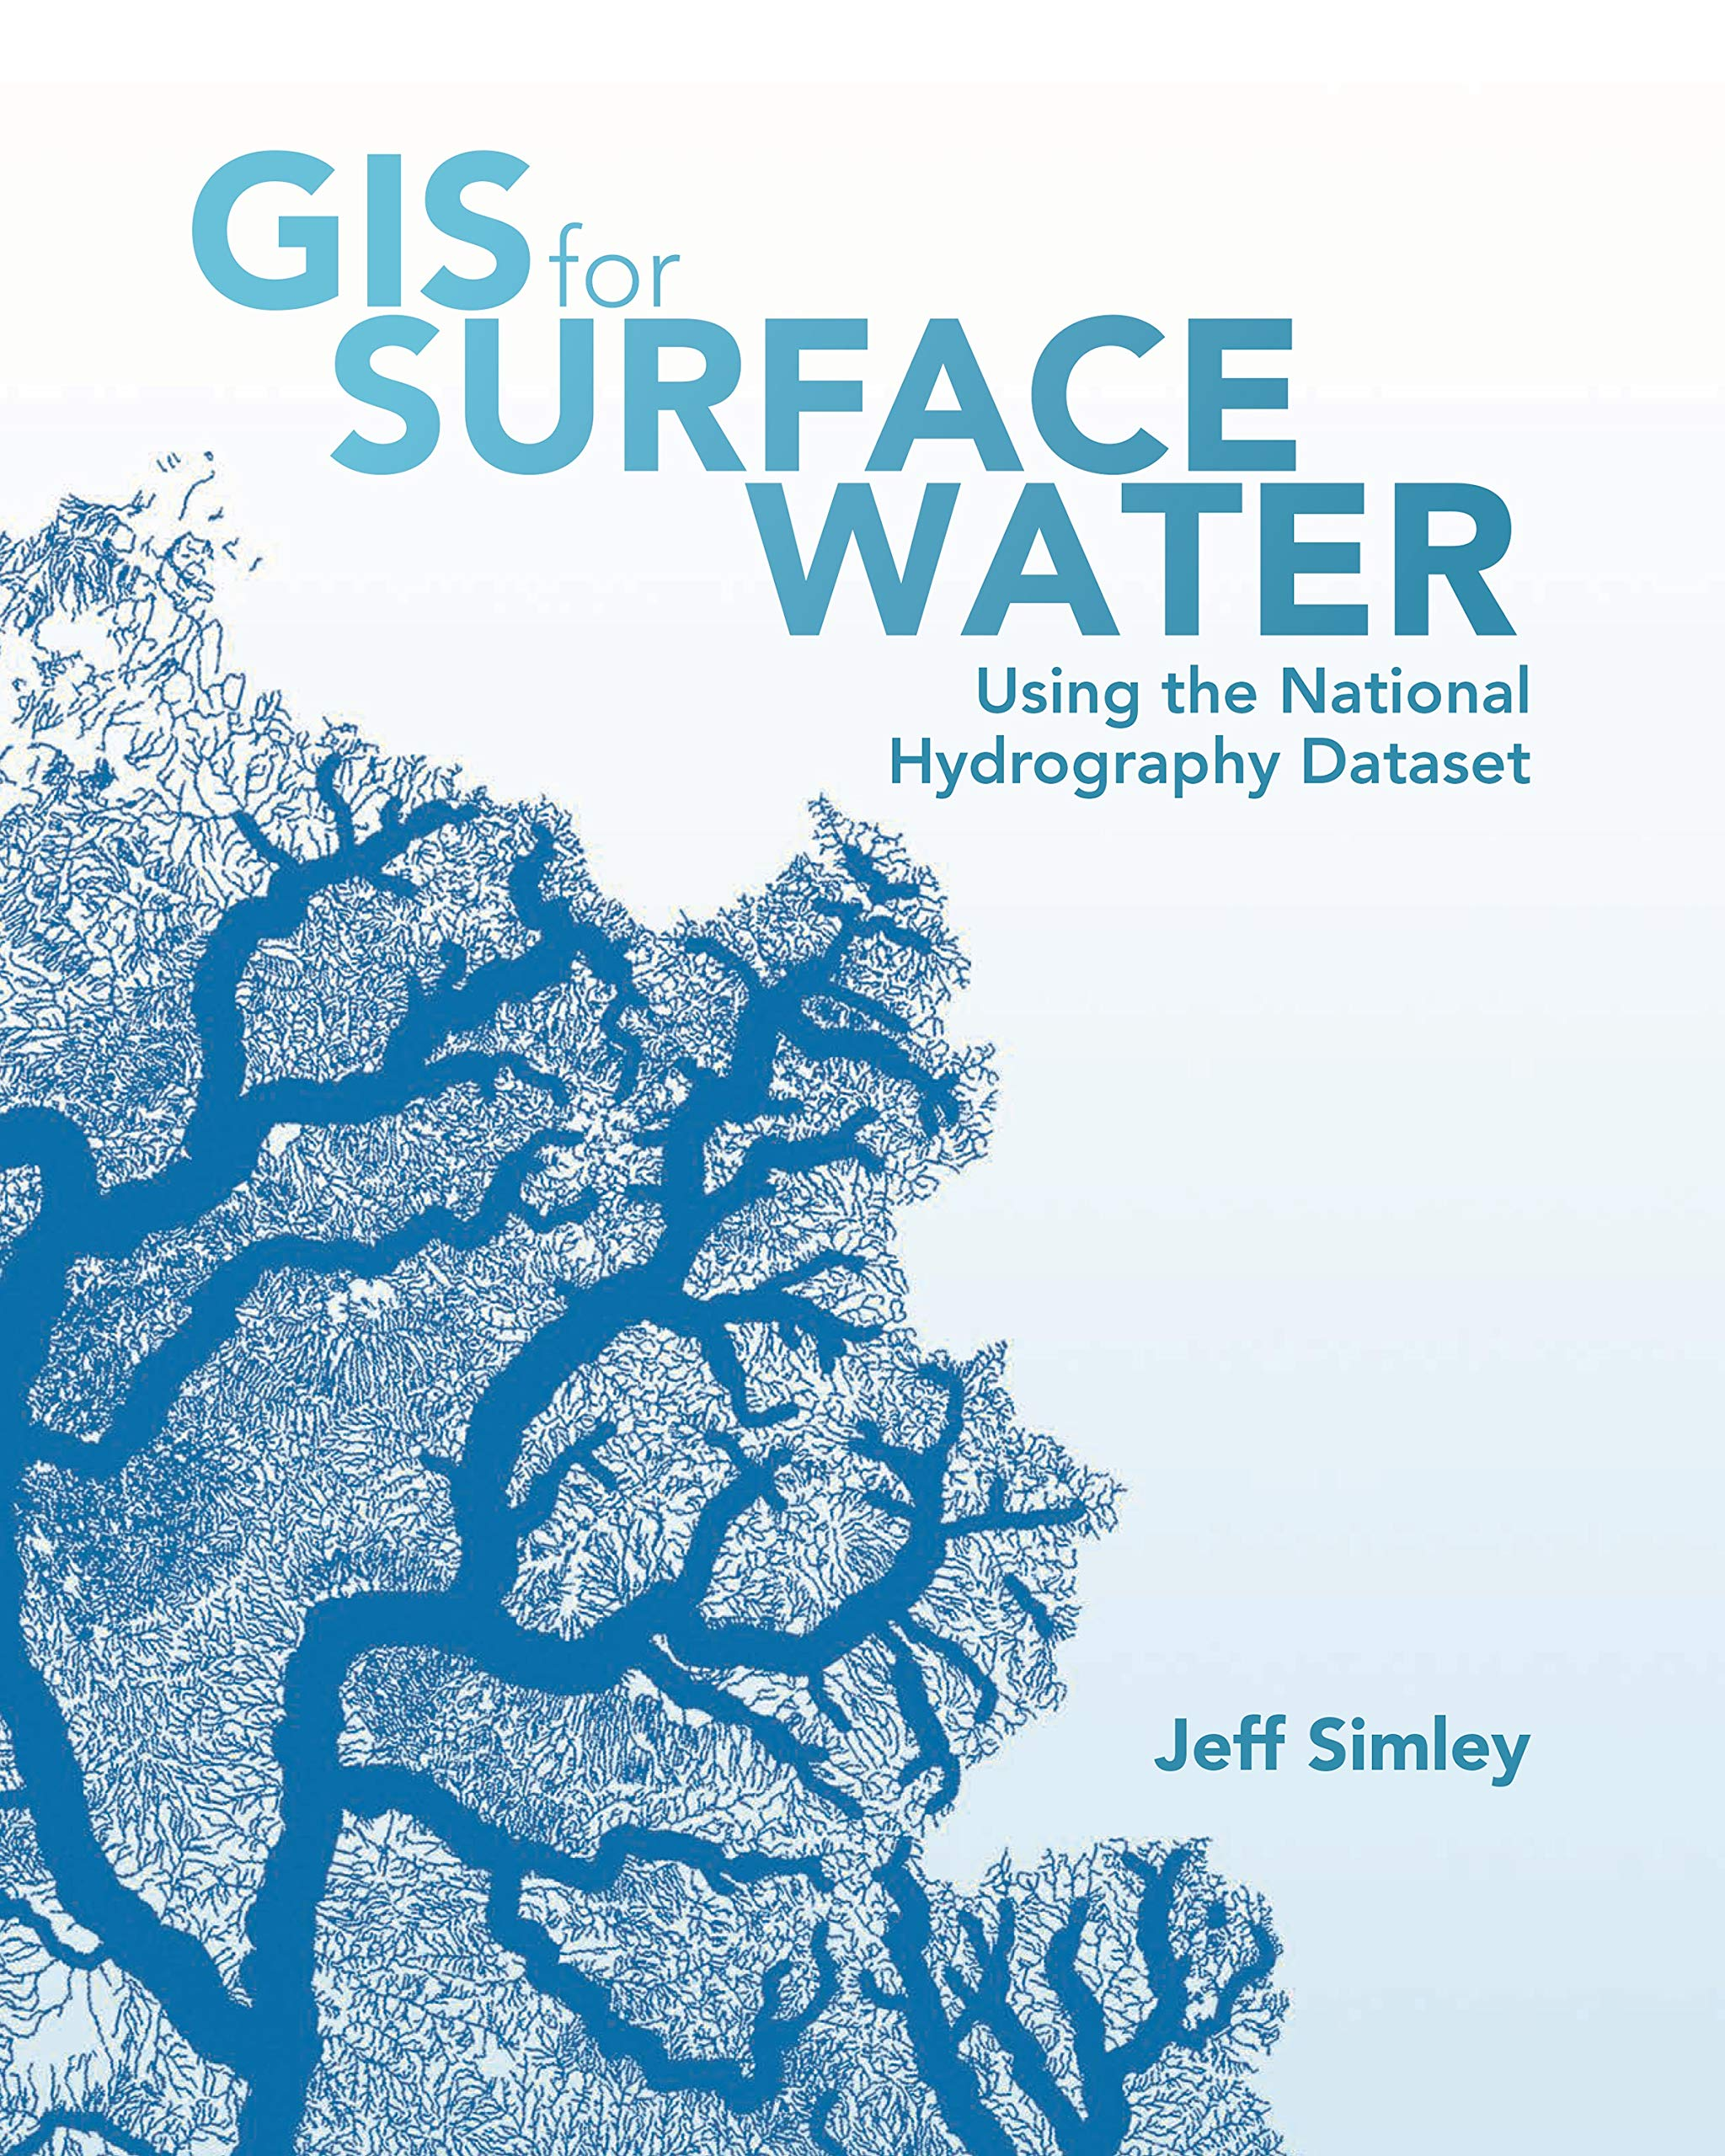 GIS for Surface Water: Using the National Hydrography